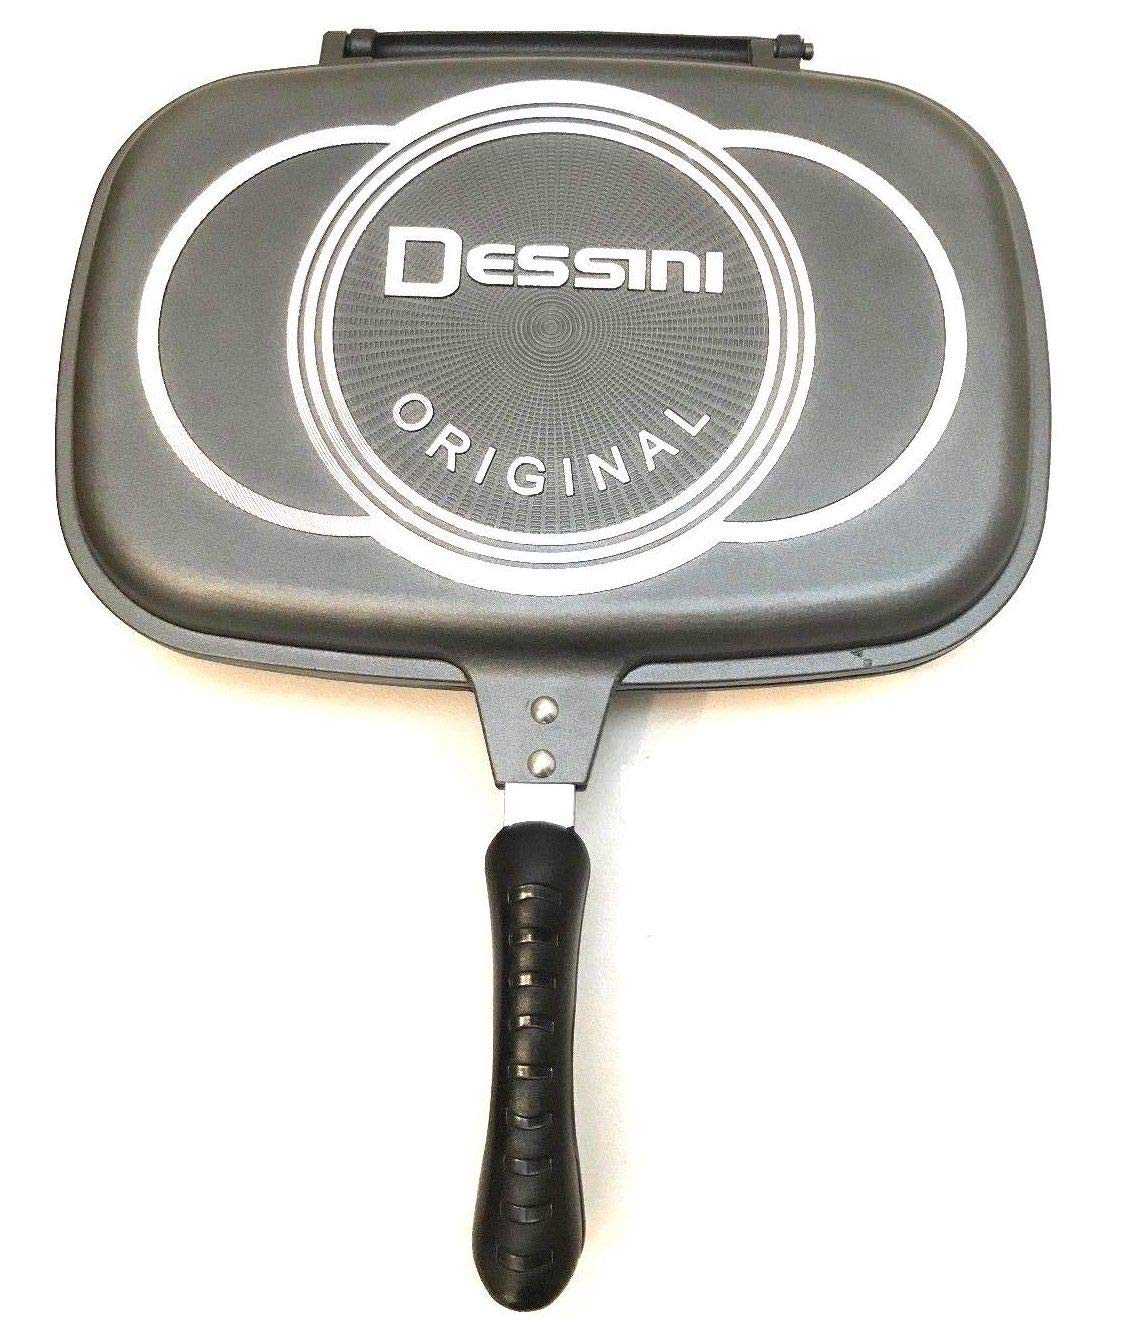 Brand New Grey Dessini Non Stick Double Sided Pressure Grilling Frying Pans